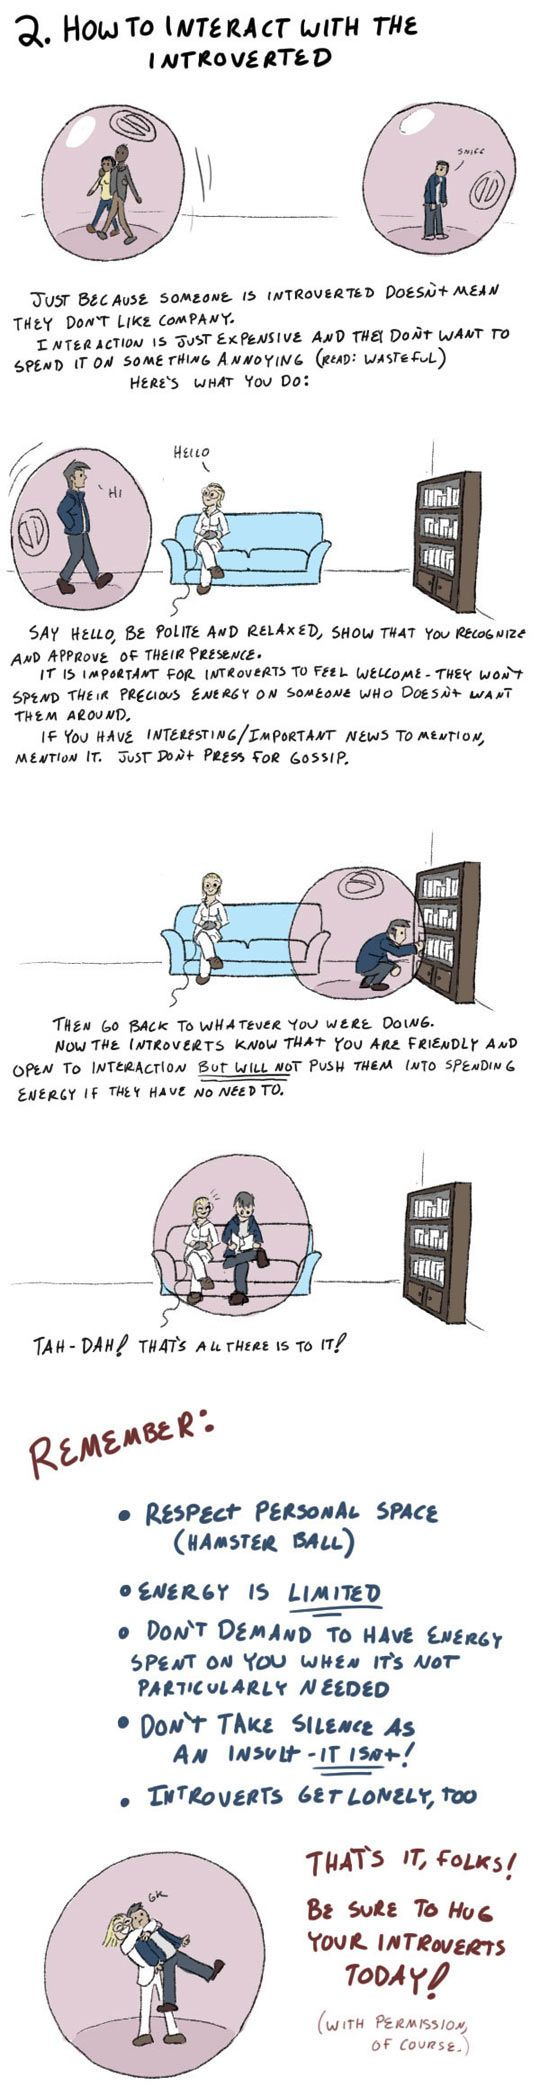 How to interact with the introverted… by Schroeder Jones '11